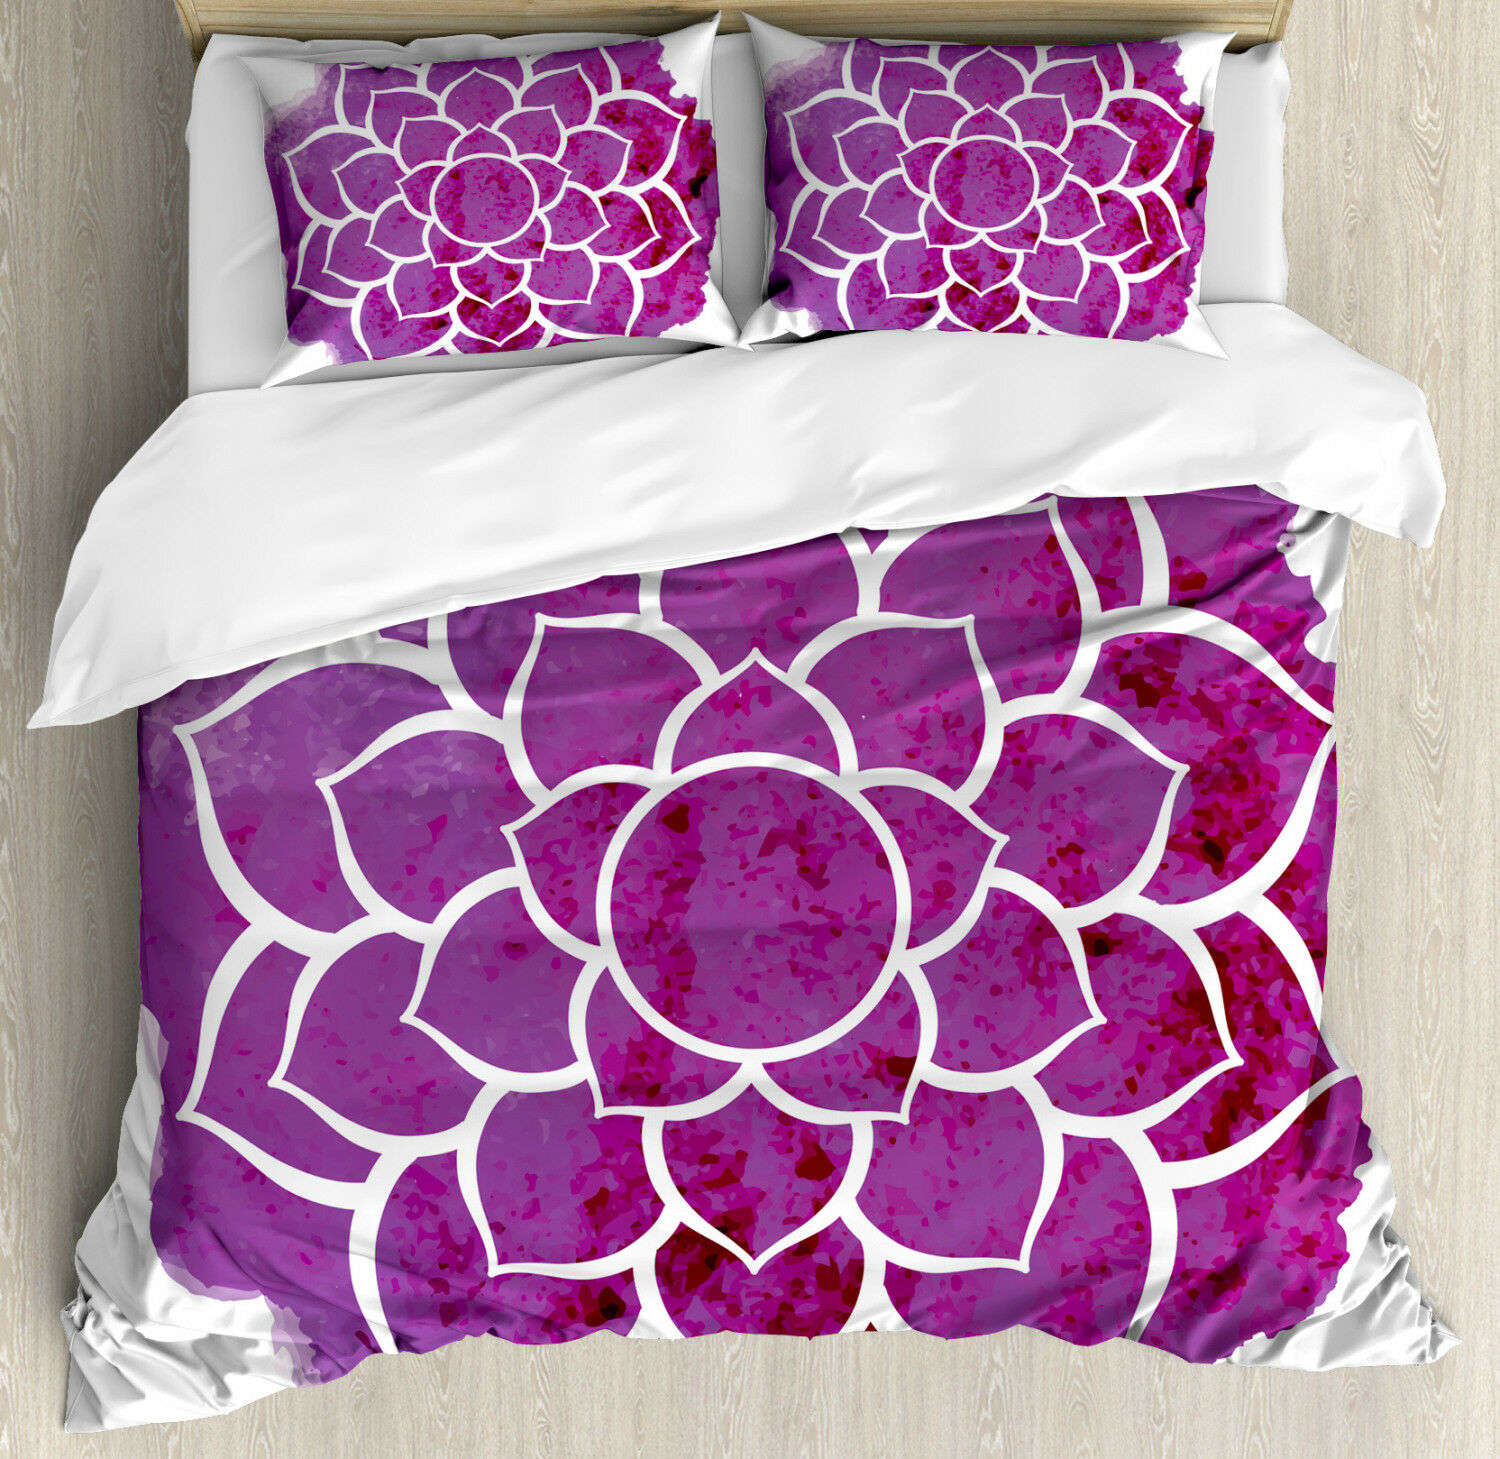 Purple Mandala Duvet Cover Set with Pillow Shams Meditation Boho Print